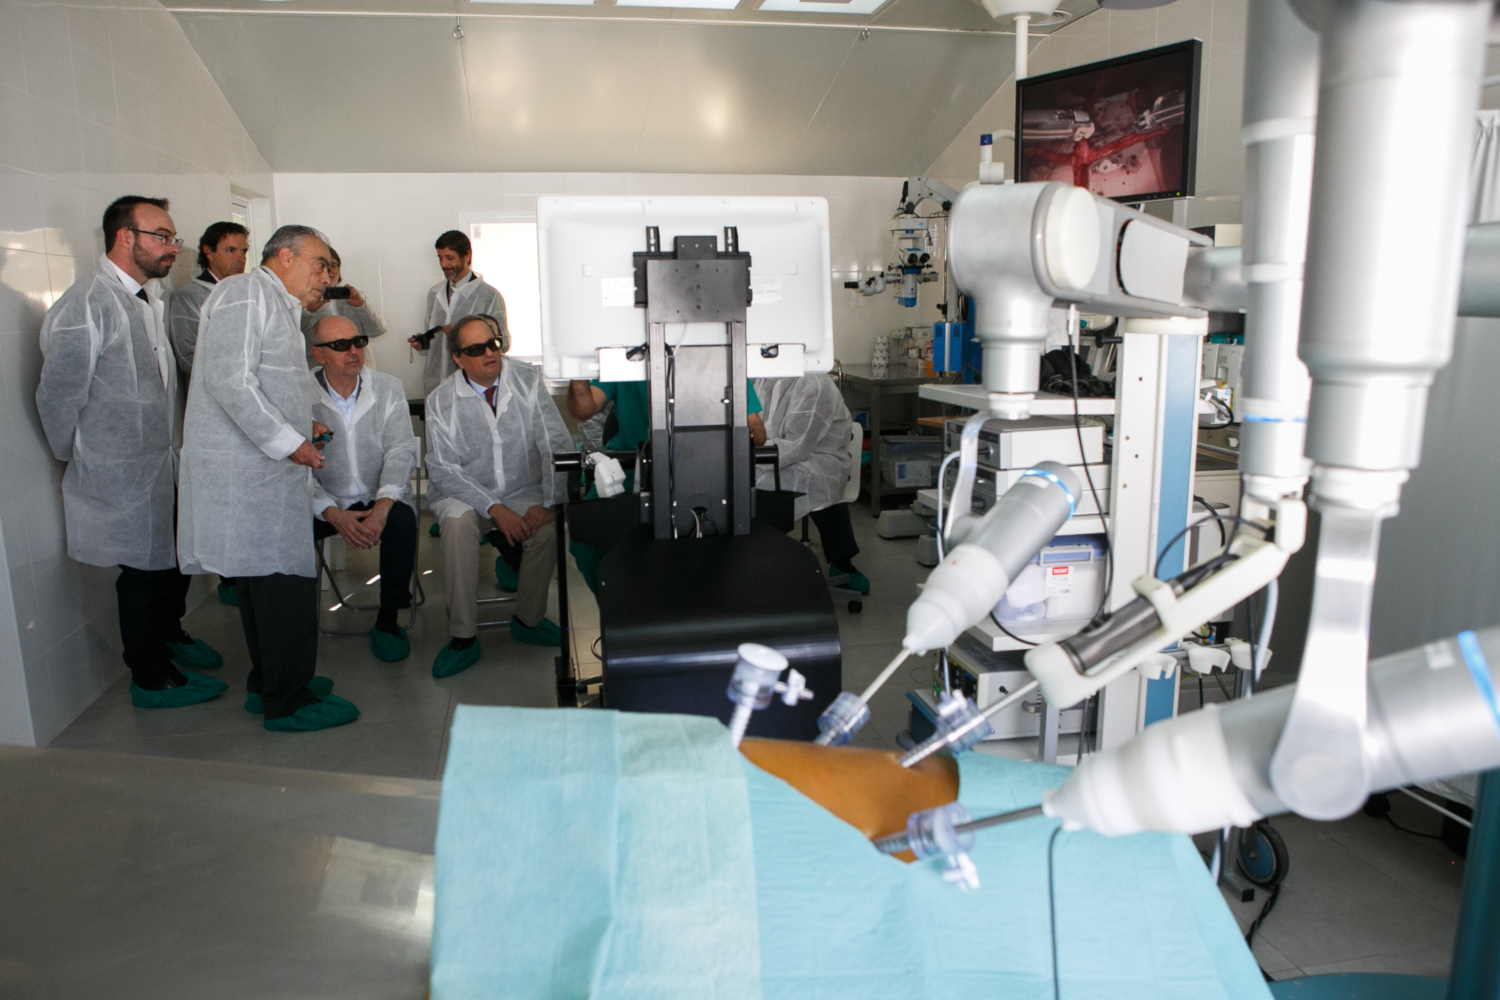 Accompanied by the director general of research, Joan Gómez, the president of the Government of Catalonia, Quim Torra, visited the company Rob Surgical on 30th November 2018. The company designs and develops new robotic systems for minimally invasive surgery. (credits: © Rob Surgical, Anna Mas / Flickr Creative Commons Attribution-NonCommercial-NoDerivs 2.0 Generic (CC BY-NC-ND 2.0))